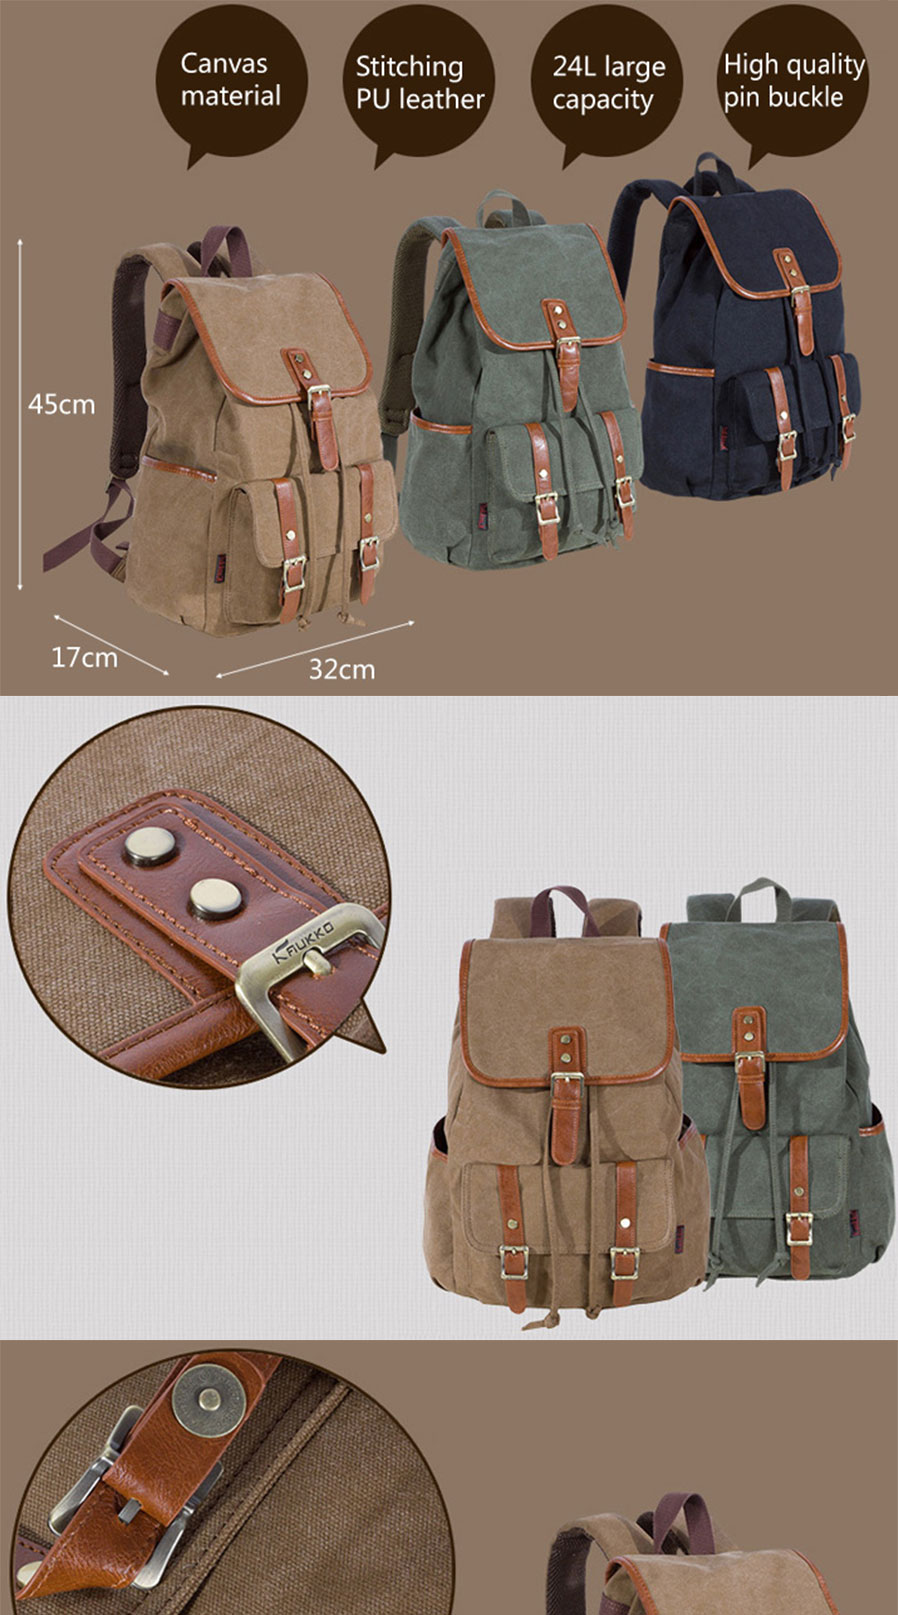 24l Army Bags - sku_449928_1_Amazing 24l Army Bags - sku_449928_1  Picture_647215.jpg